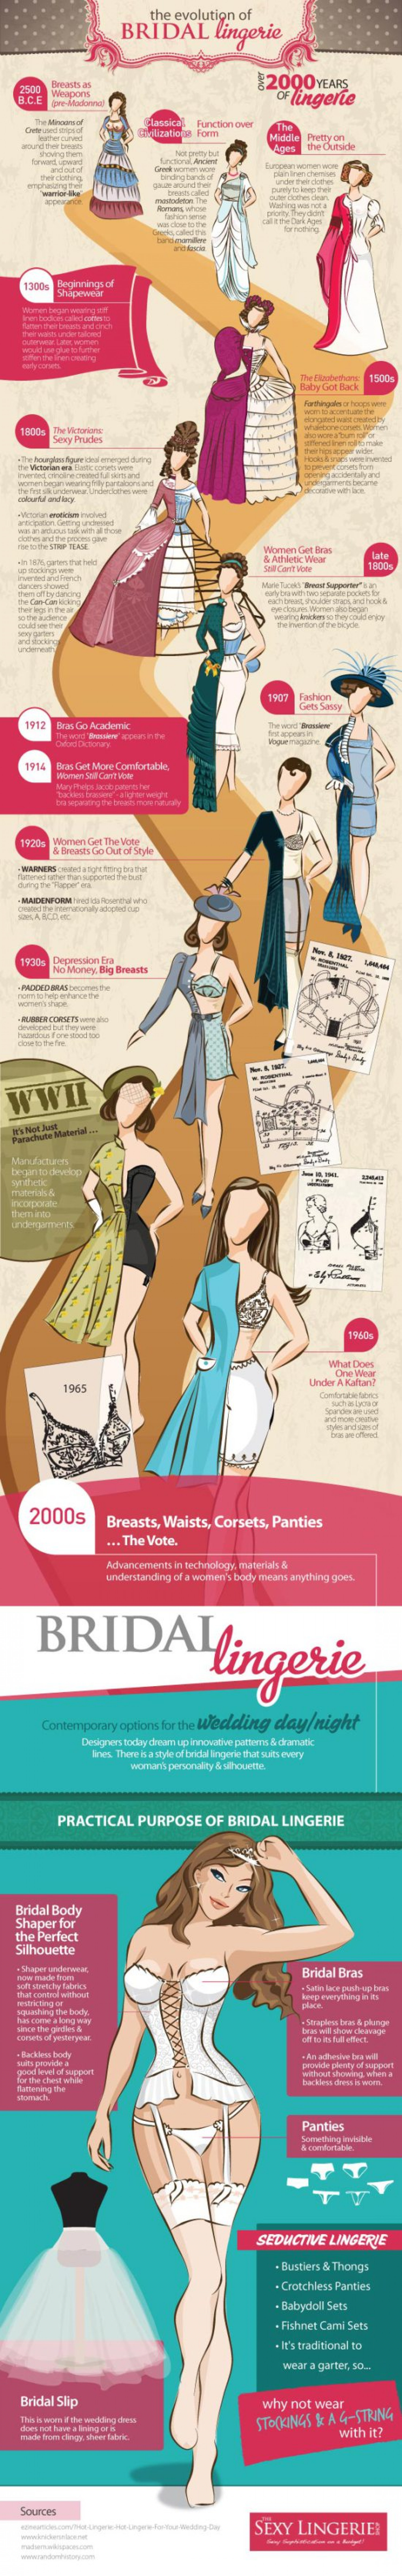 Infographic: The Evolution of Bridal Lingerie Infographic